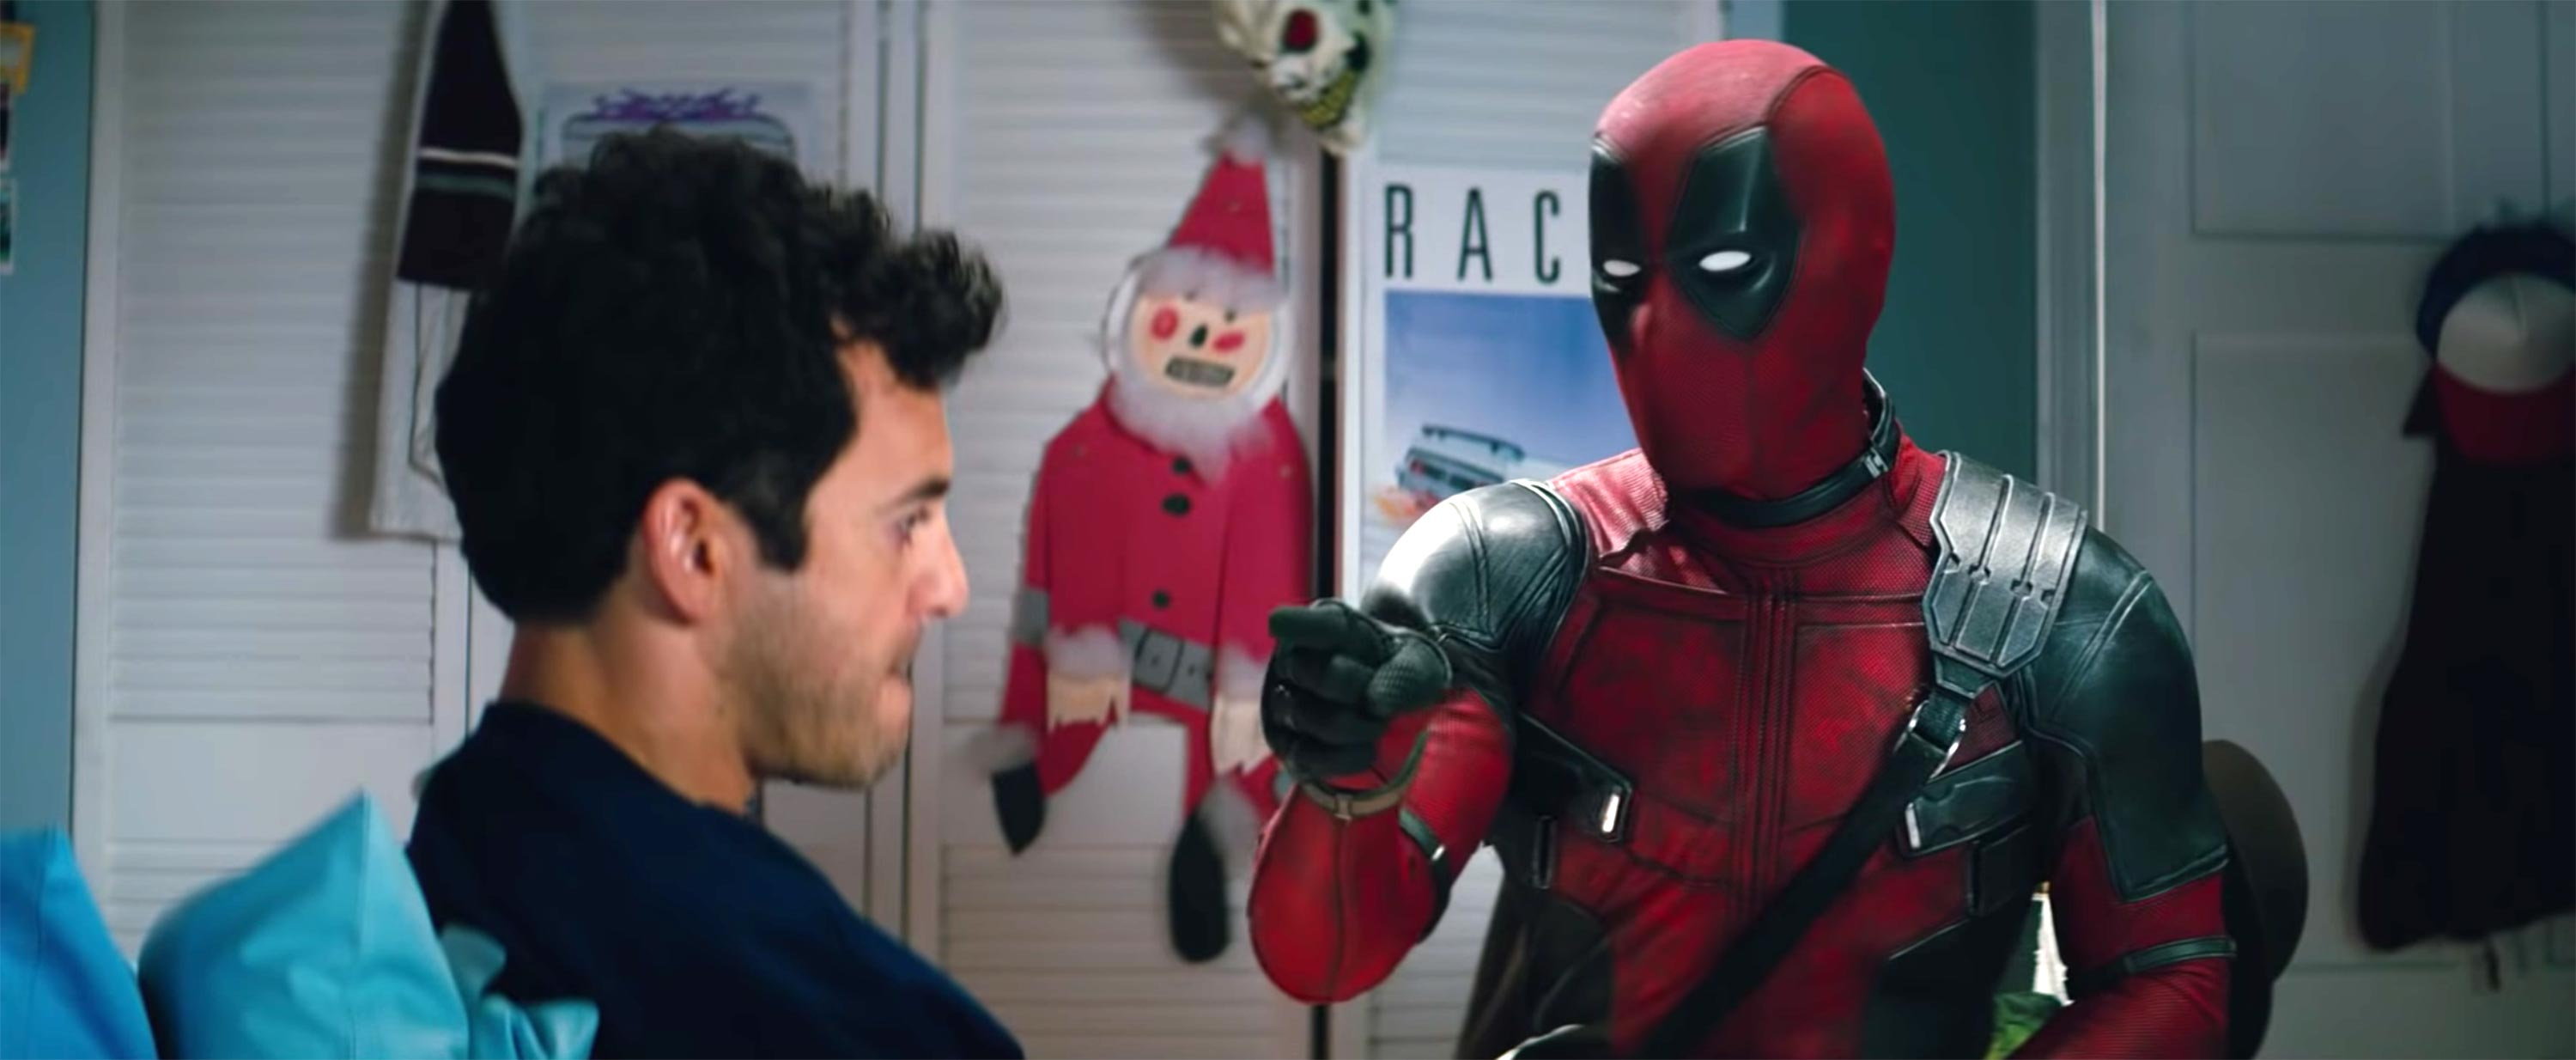 Deadpool passionately defends Nickelback in latest Once Upon trailer